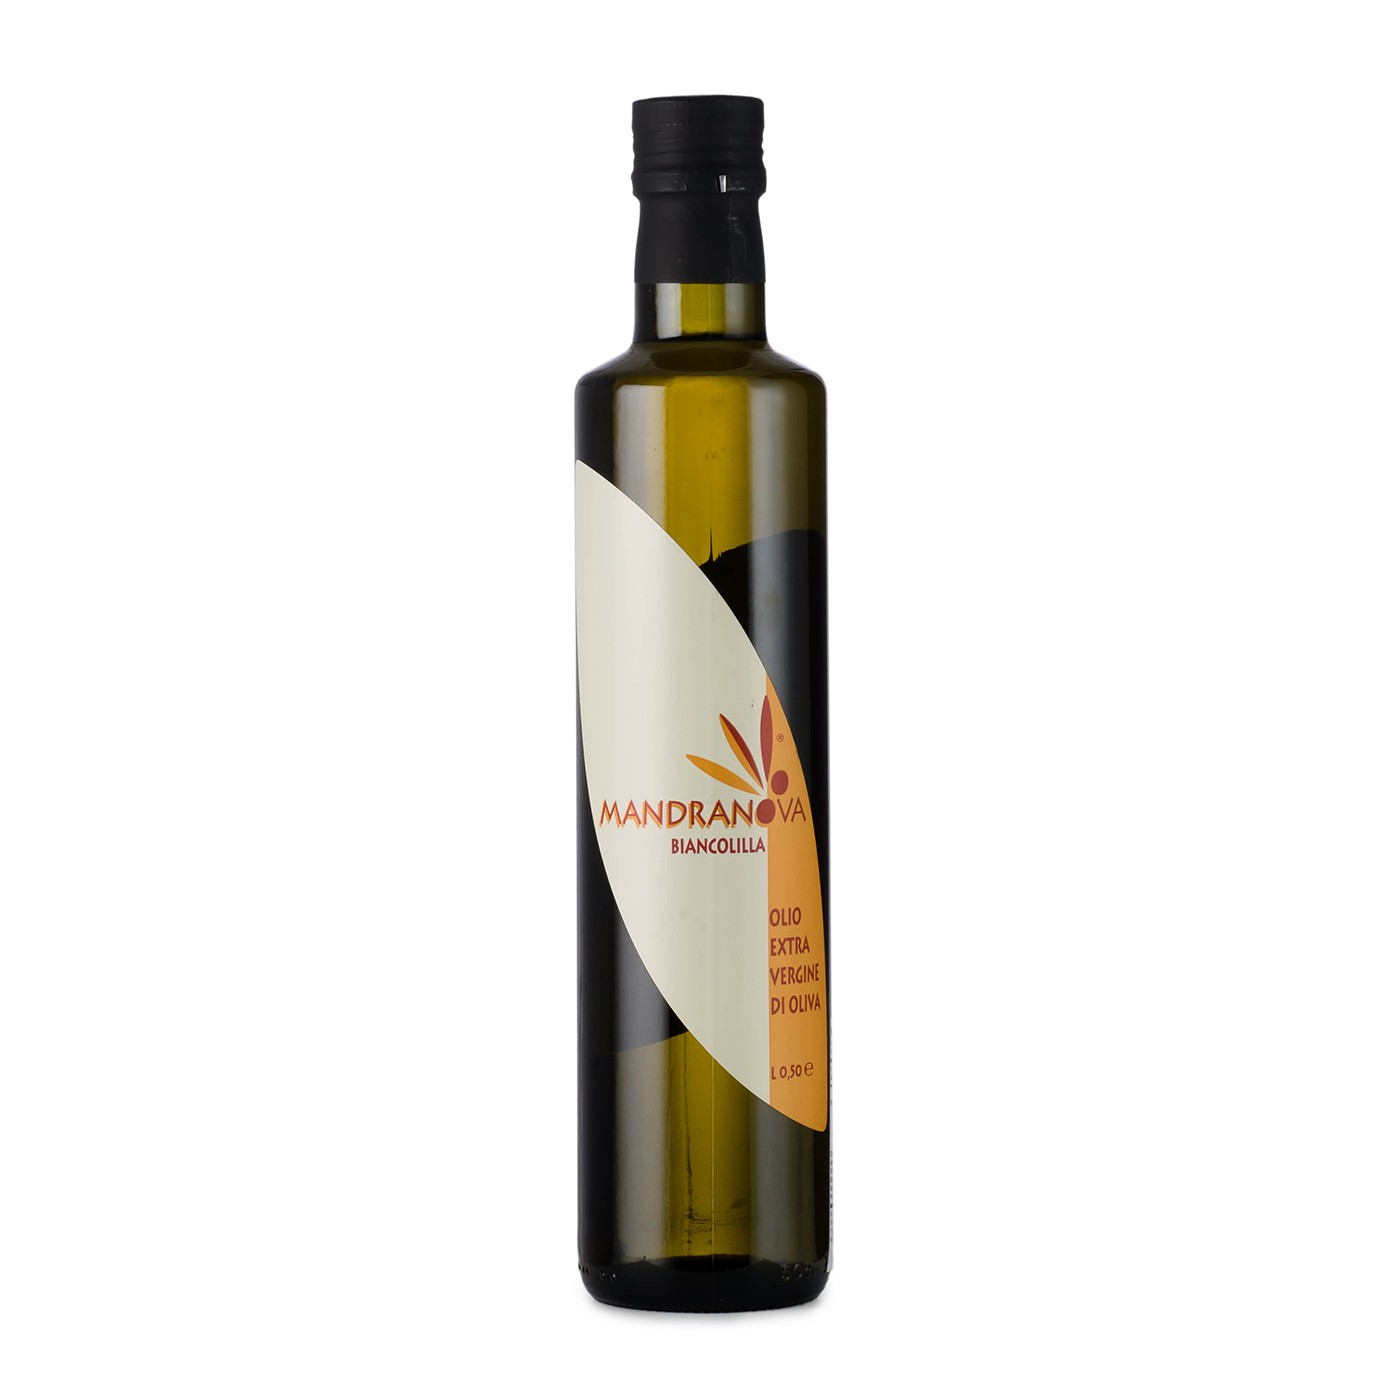 Biancolilla Extra Virgin Olive Oil 16.9 fl oz